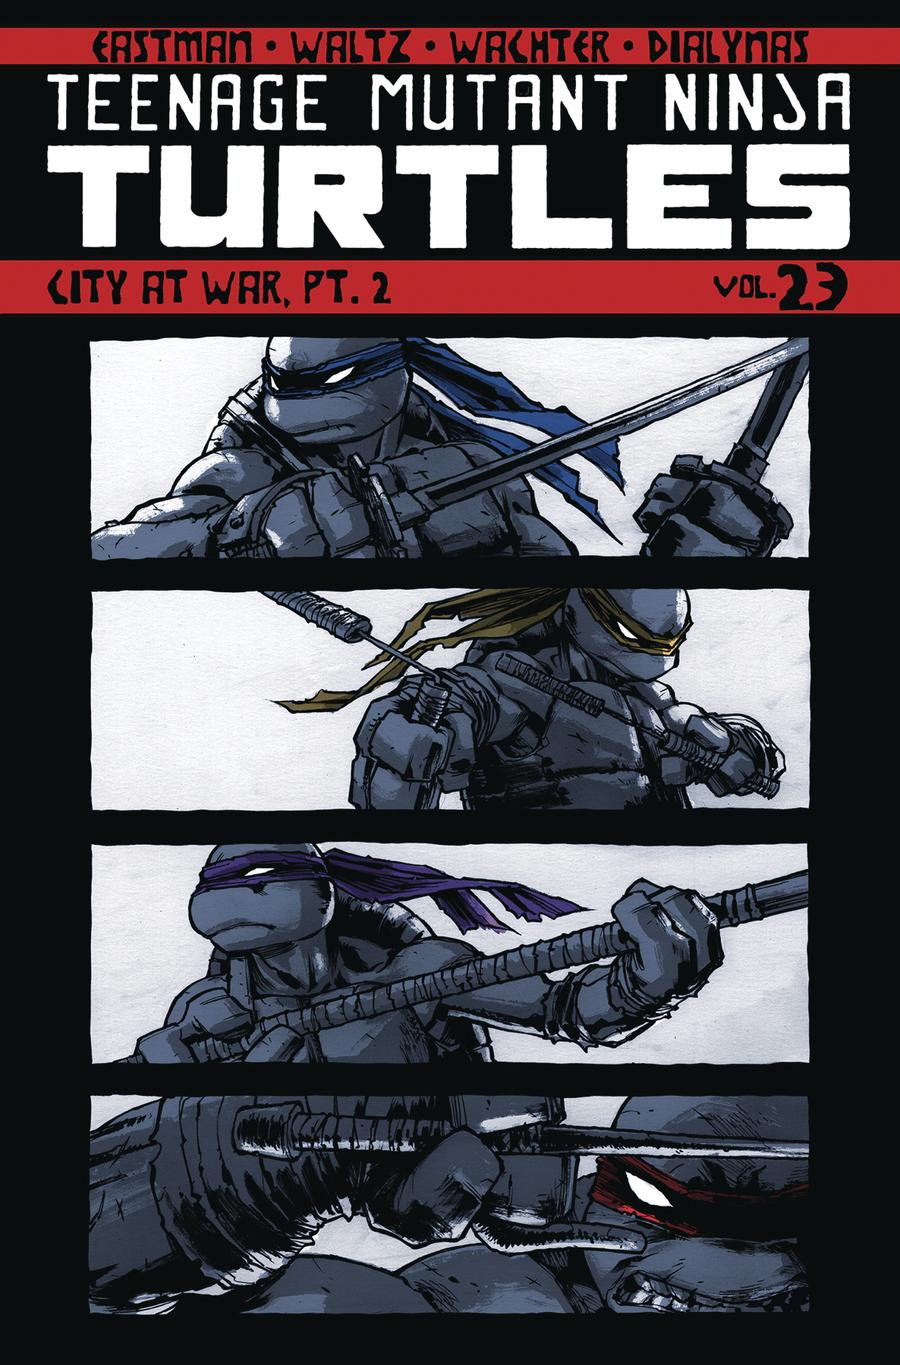 Teenage Mutant Ninja Turtles Ongoing Vol 23 City At War Part 2 TP